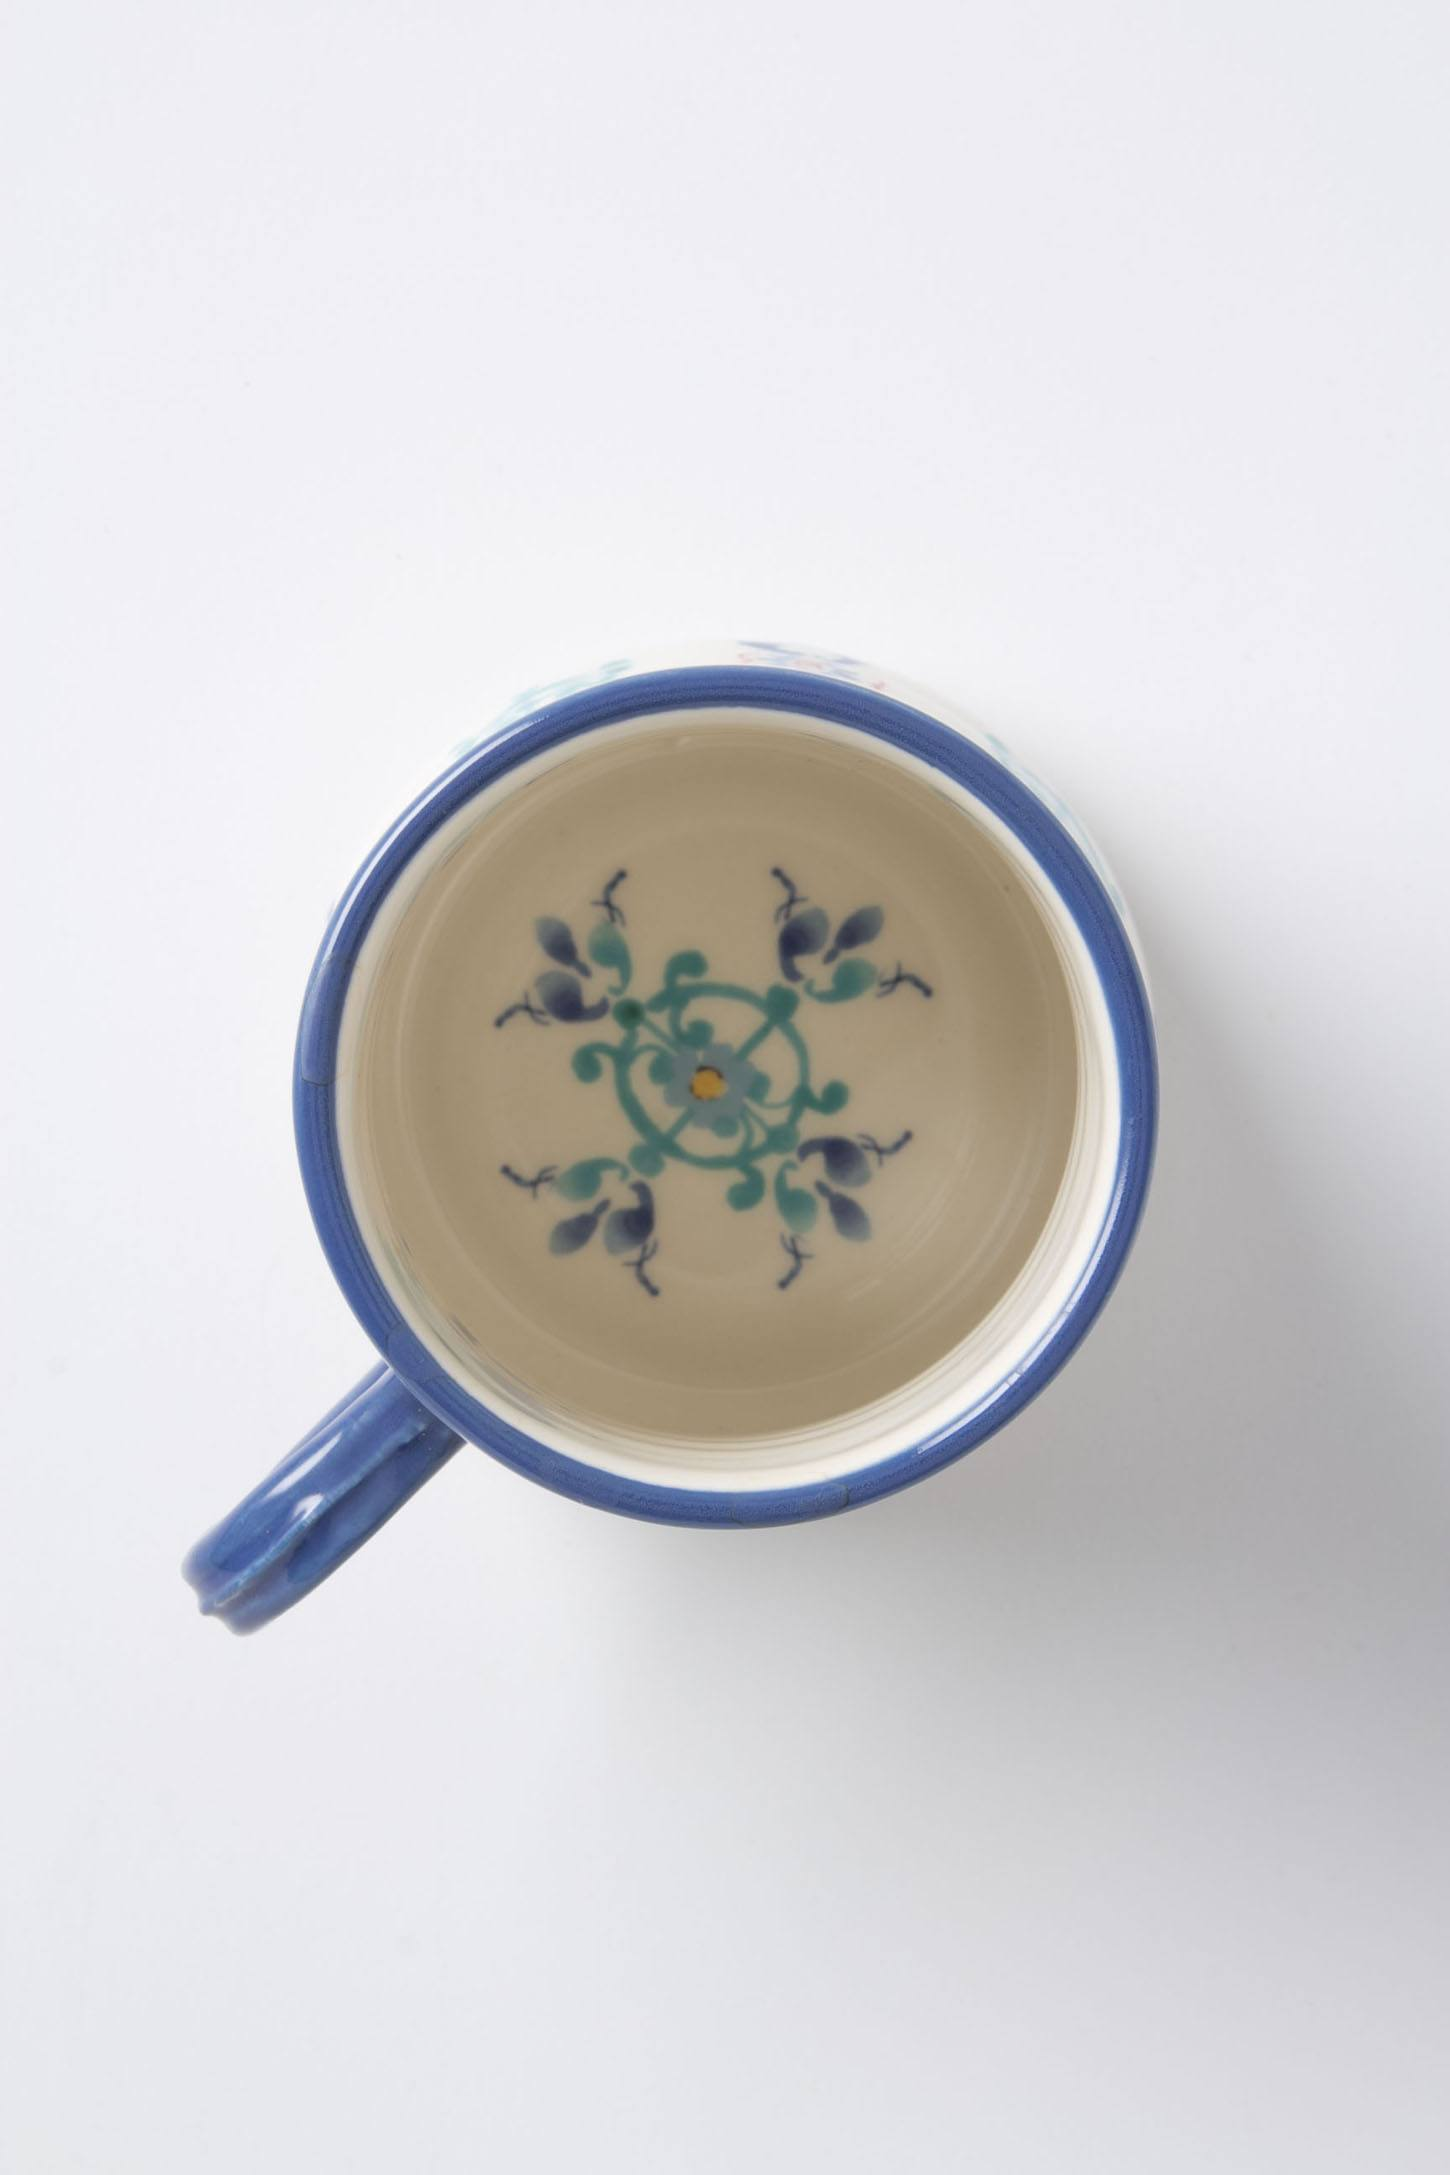 Slide View: 5: Swirled Symmetry Mug